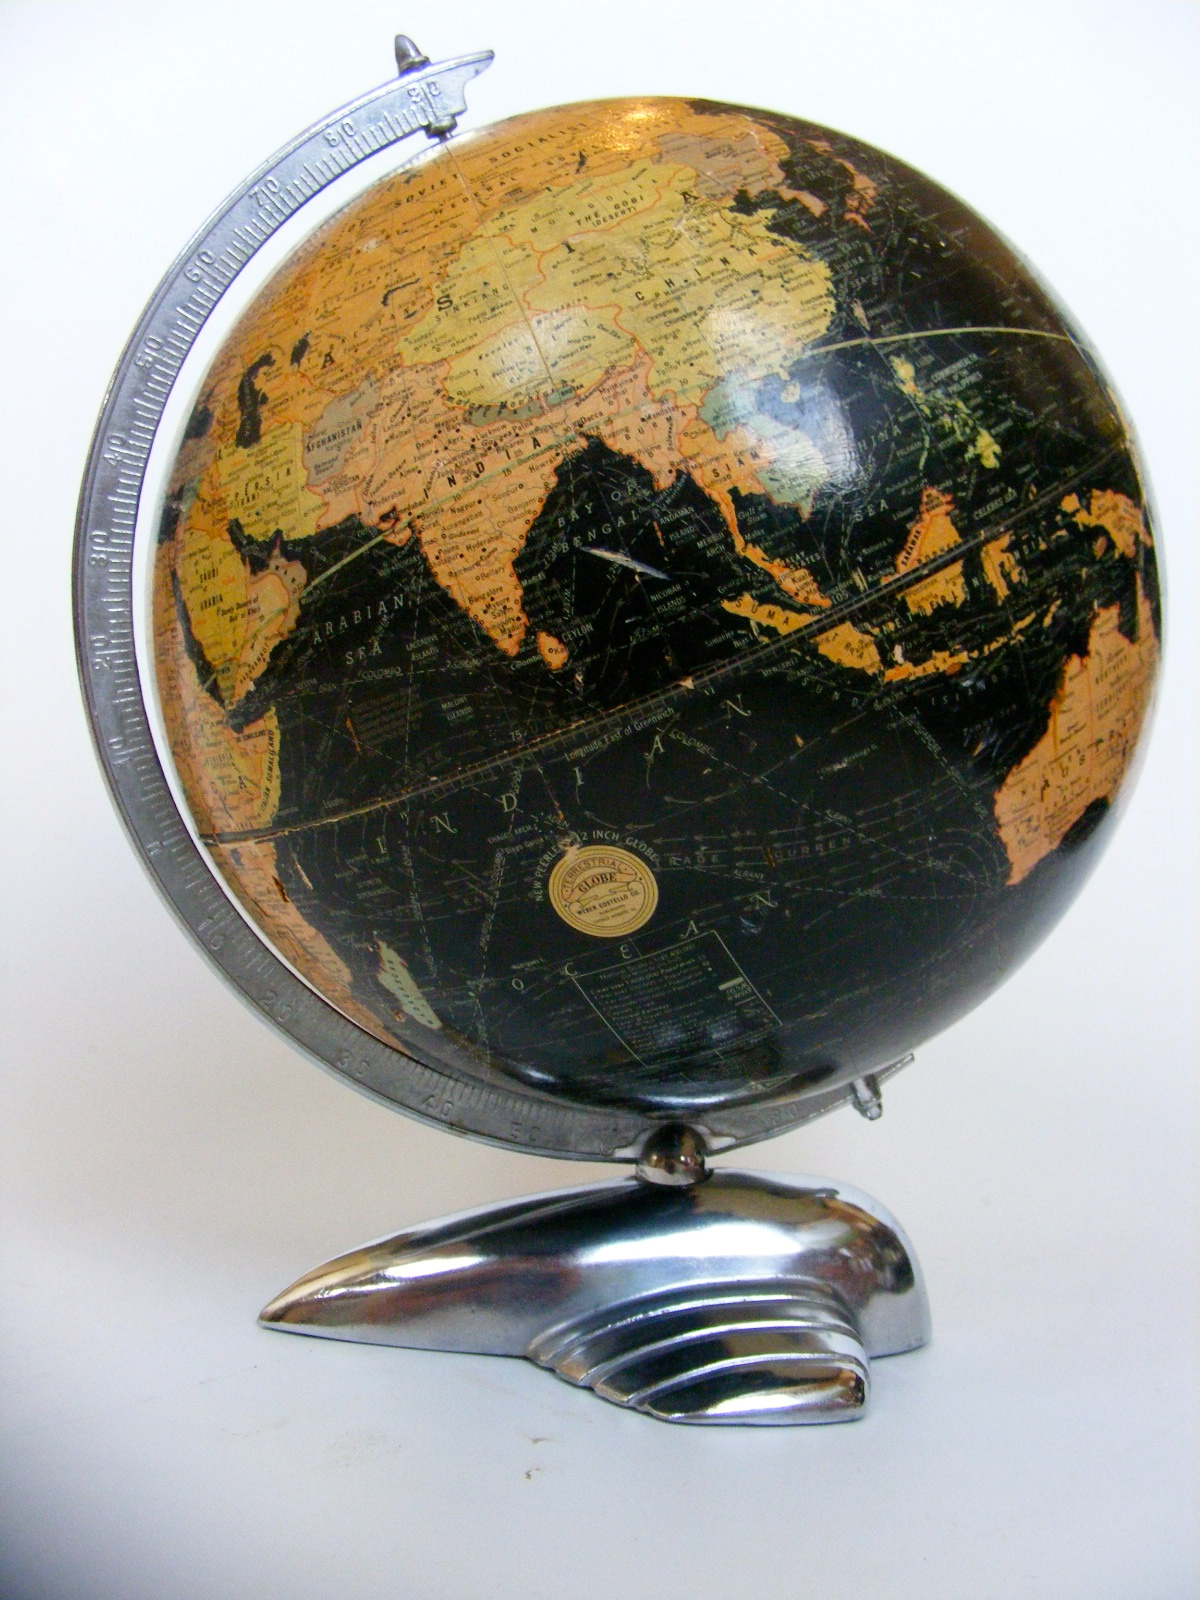 The World Wars - Globes dating in the era of WWI and WWII.